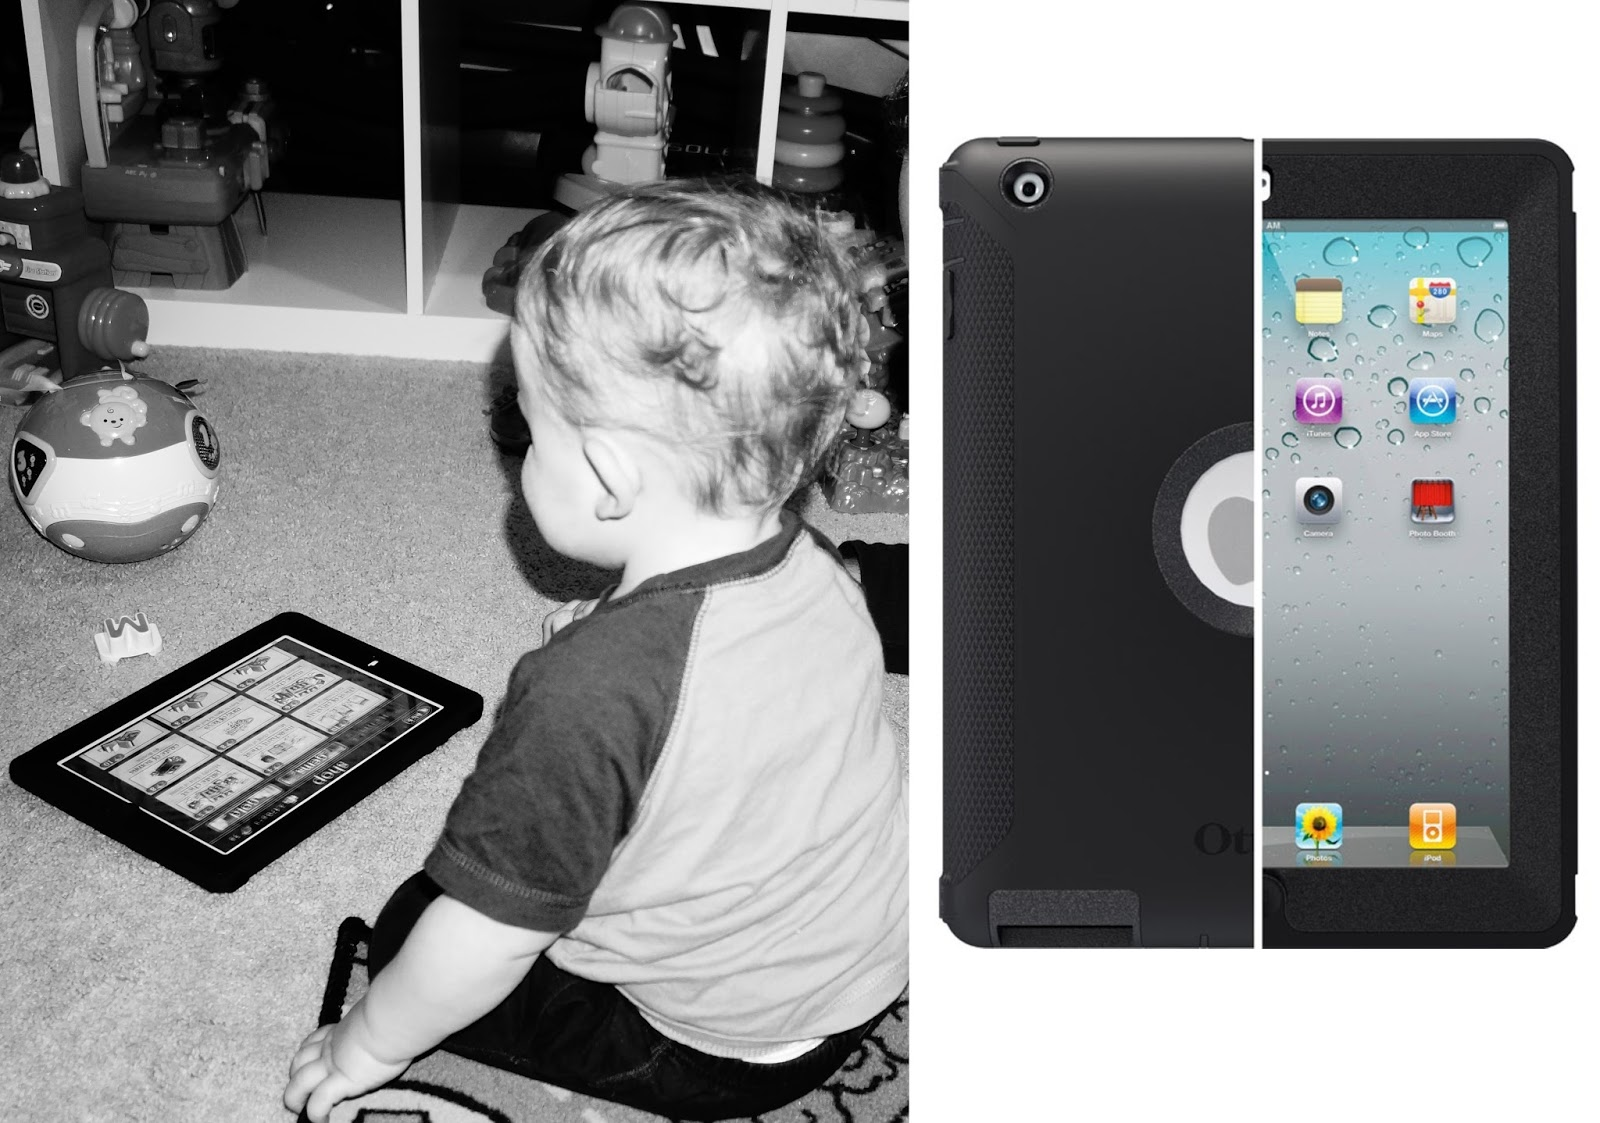 Toddler Must Haves - IPad Otterbox cover is a must-have so kids don't destroy the iPad.